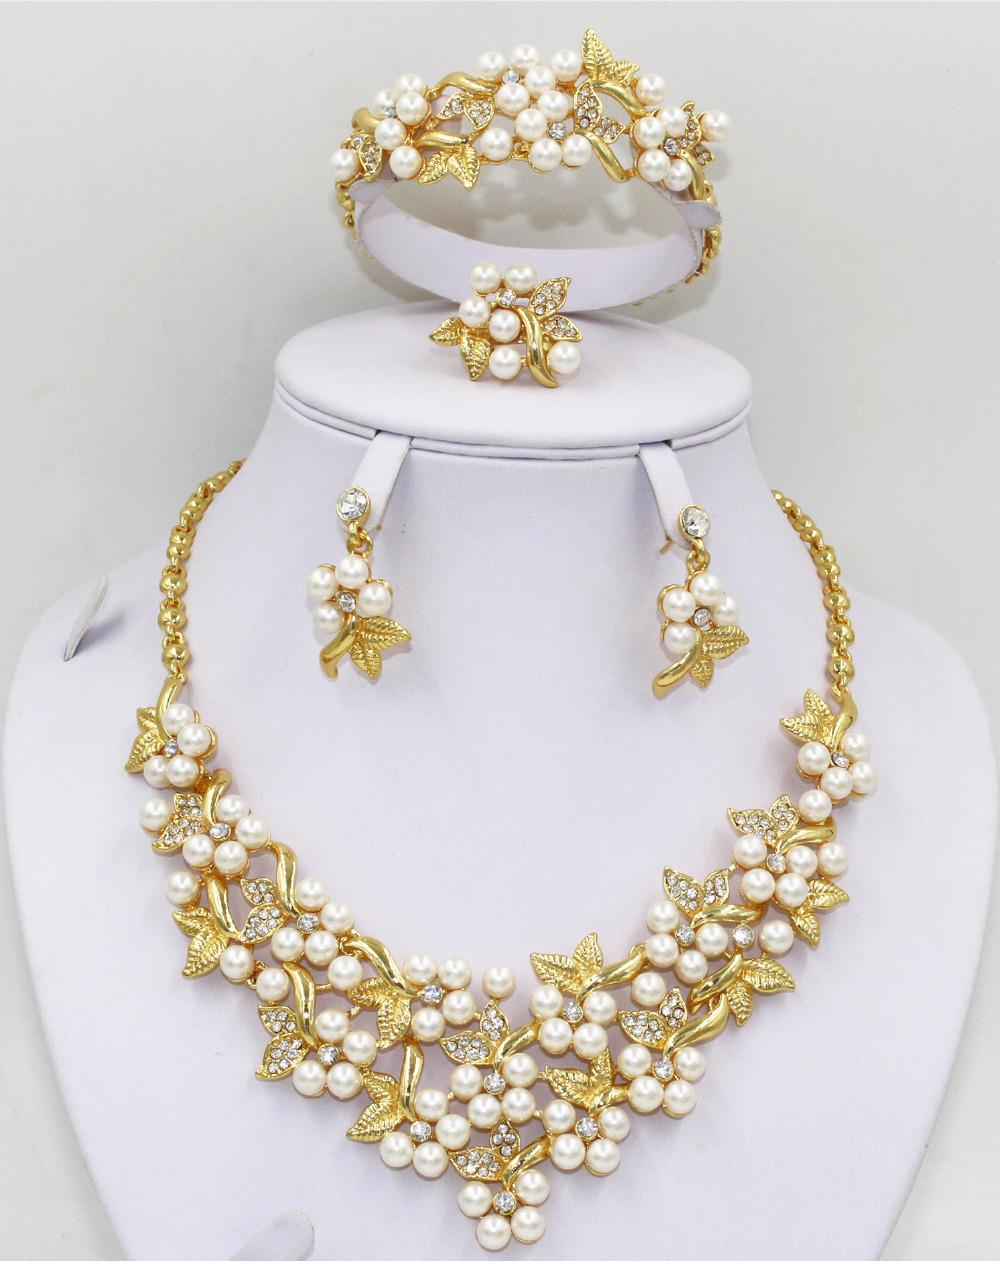 Aliexpress African Bridal Necklace Fashion Pearl